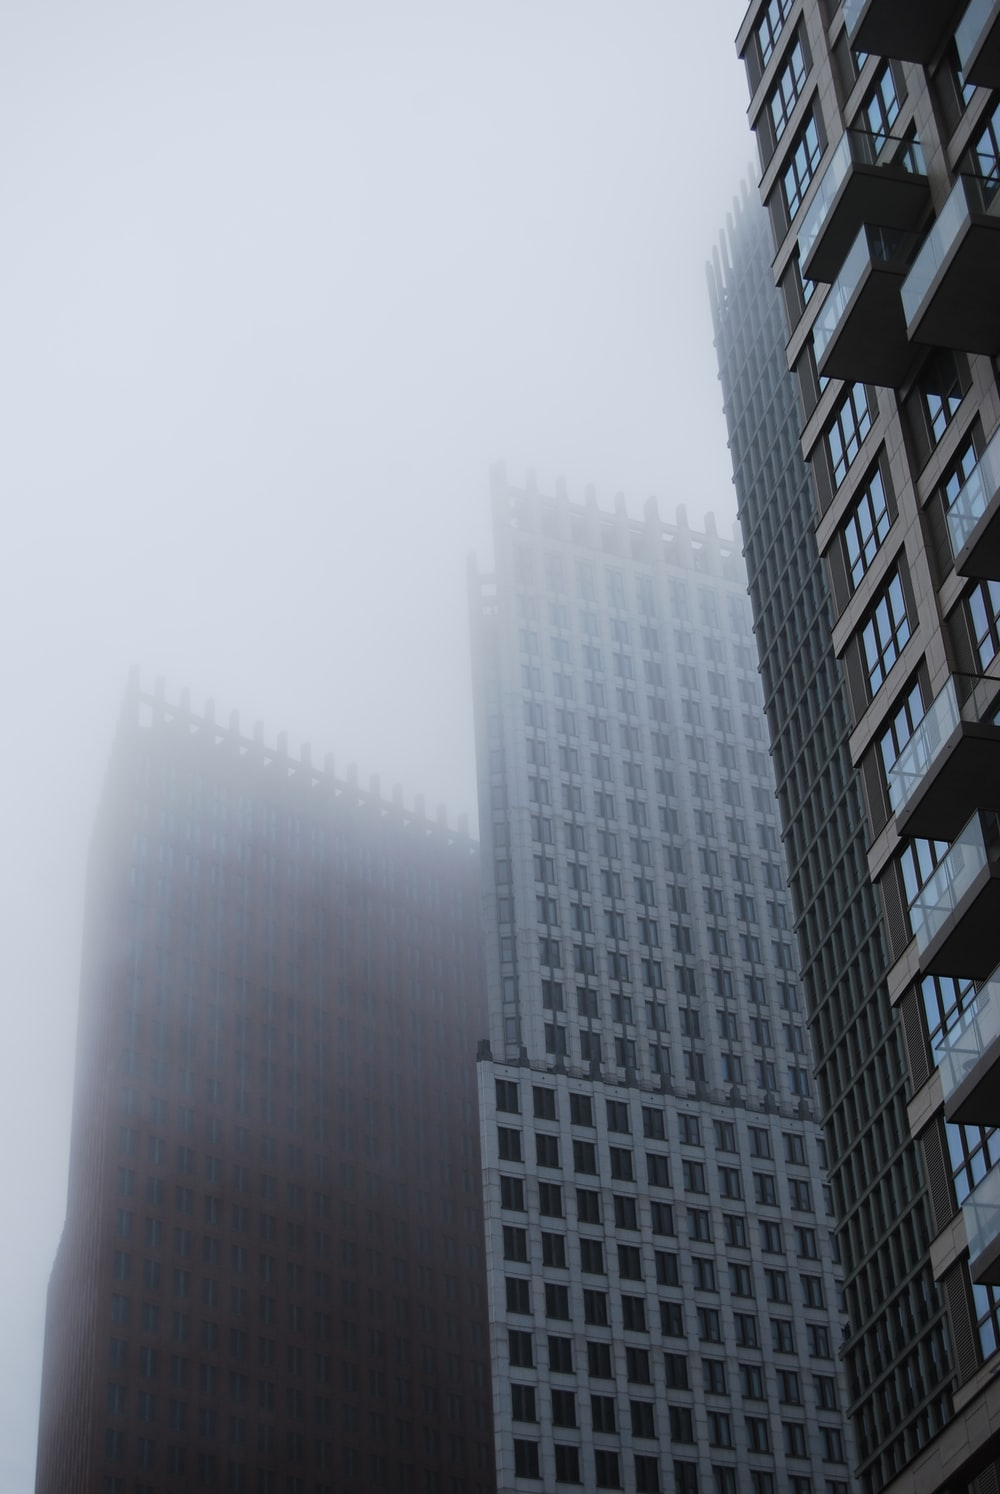 city with high-rise buildings during foggy season